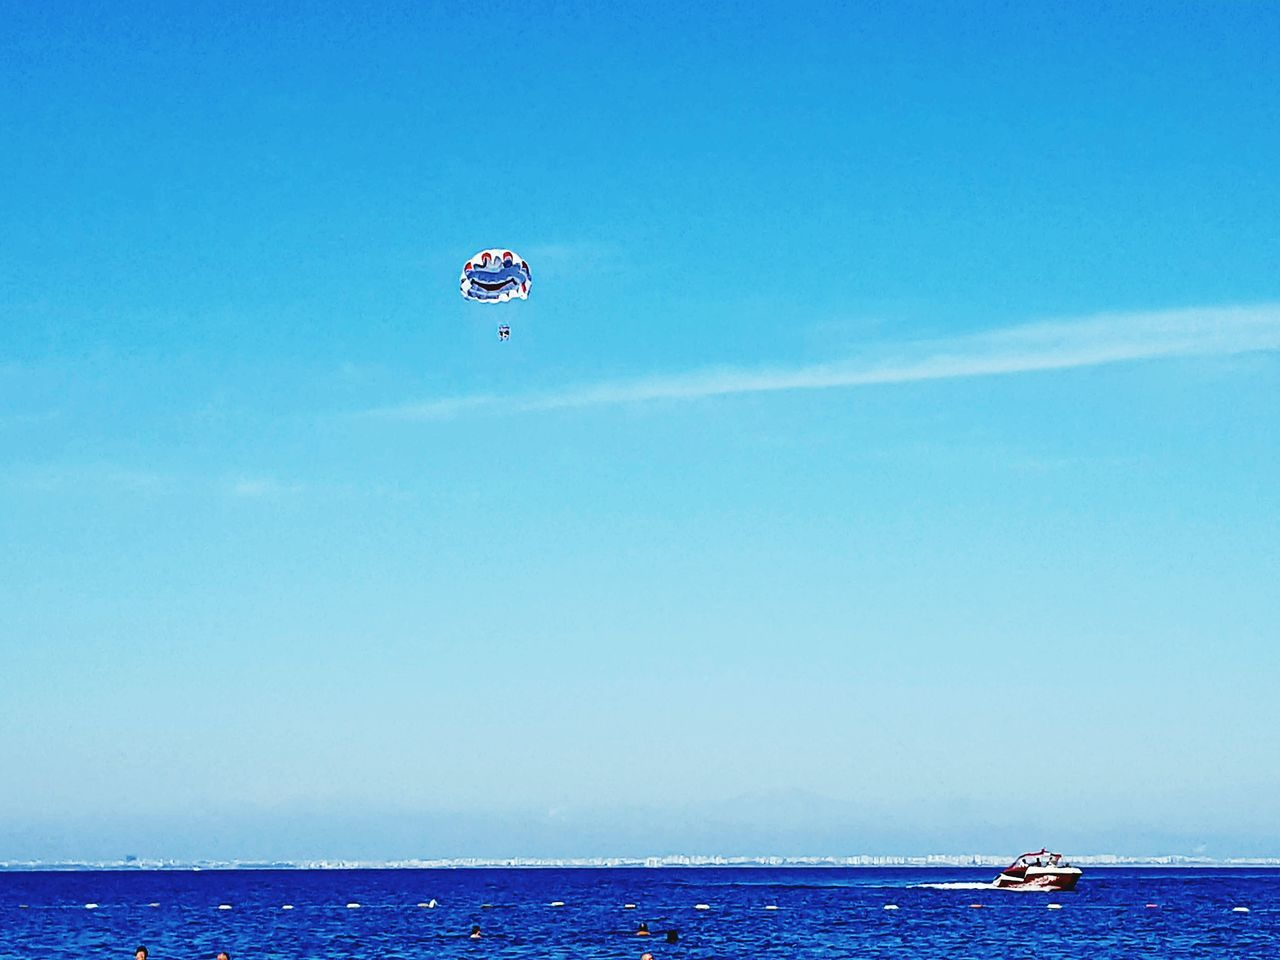 sea, day, horizon over water, nature, water, outdoors, sky, blue, clear sky, scenics, beauty in nature, nautical vessel, men, parachute, people